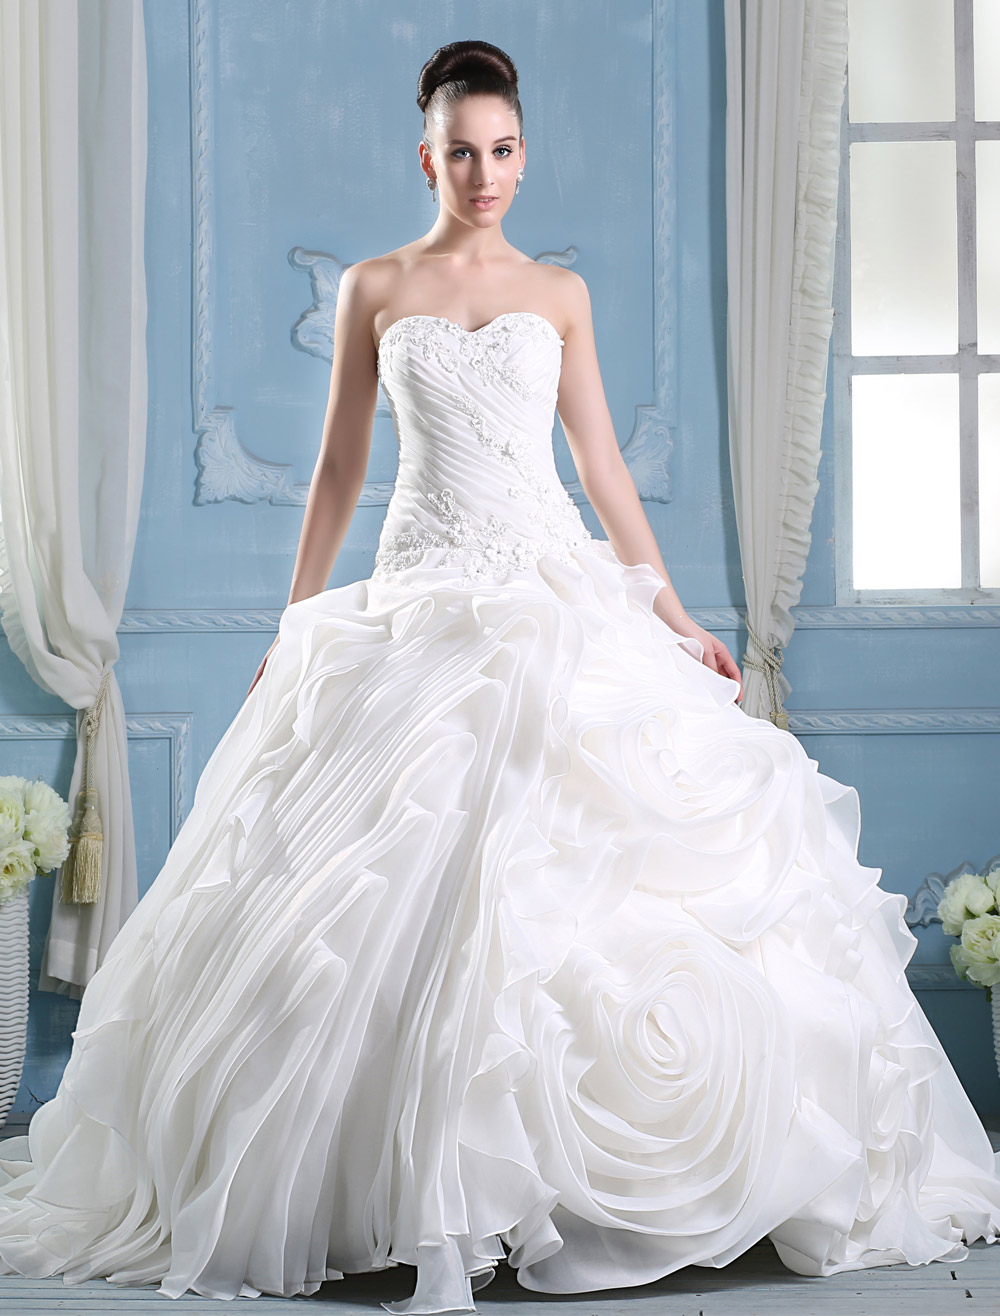 Ivory Sweetheart Neck A-line Strapless Flower Wedding Dress ...